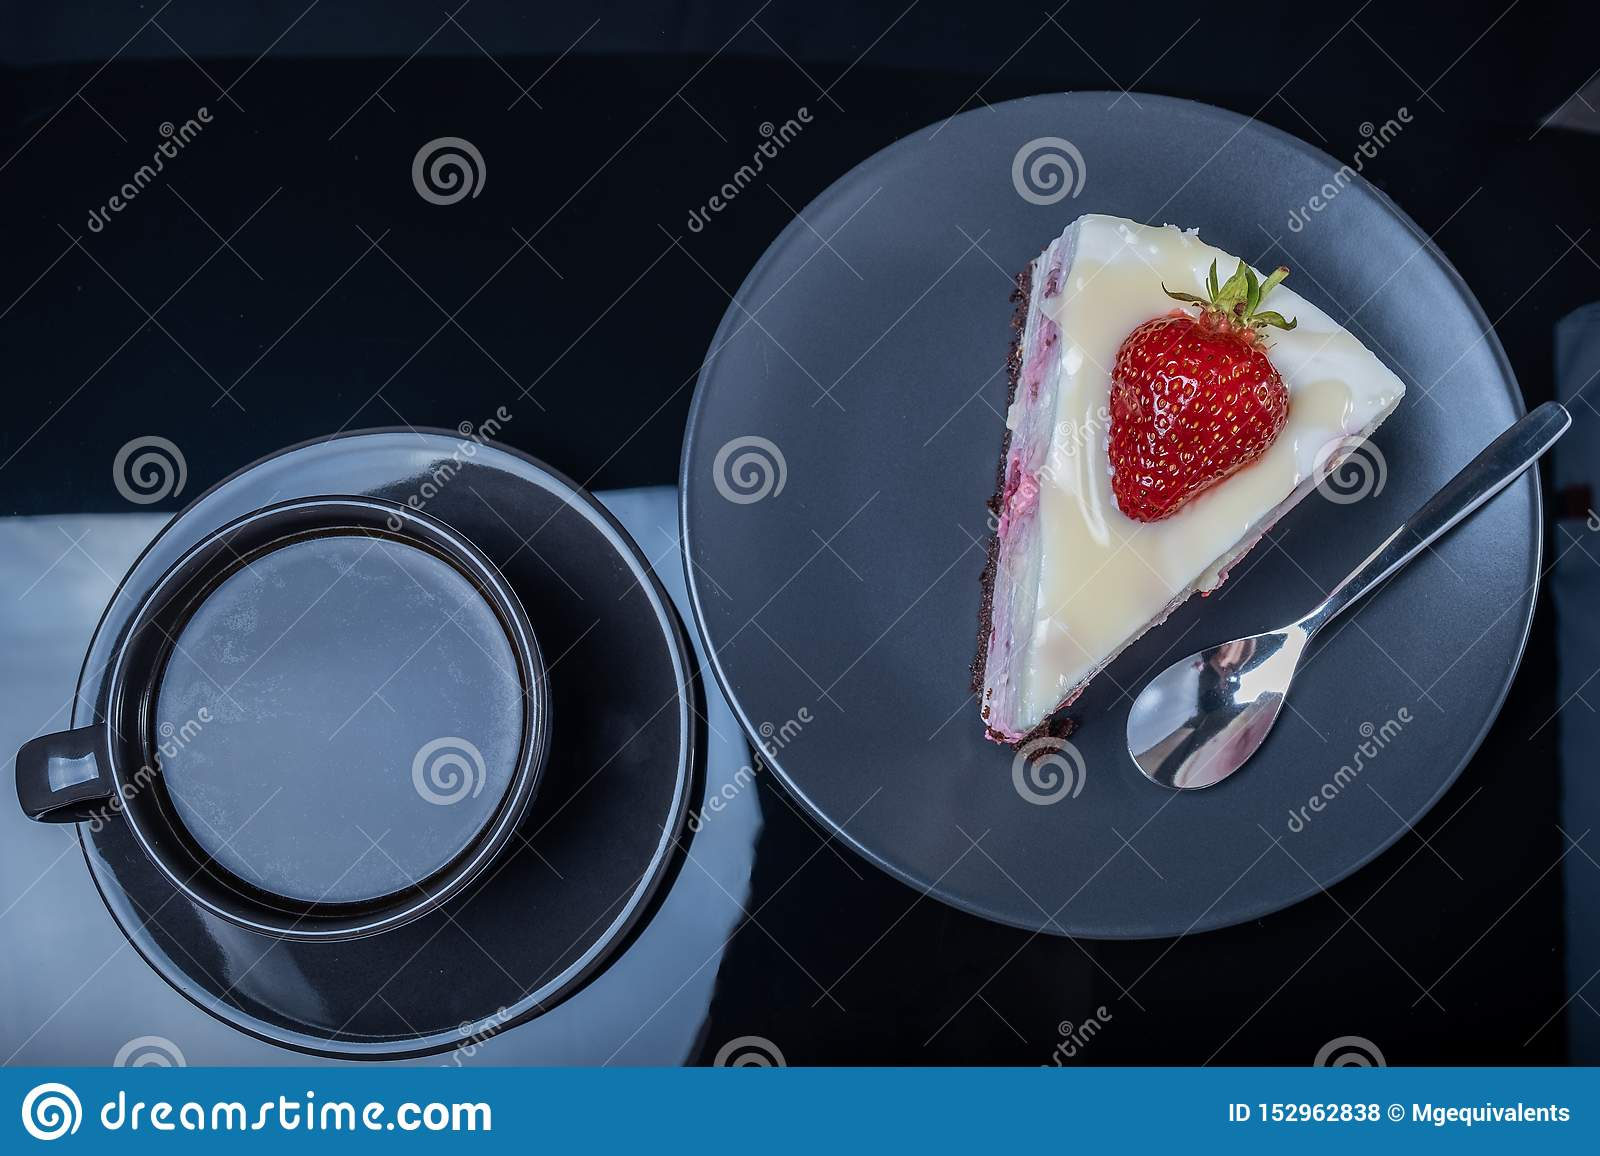 Cream fruit cake and a cup of black coffee on a black glass table